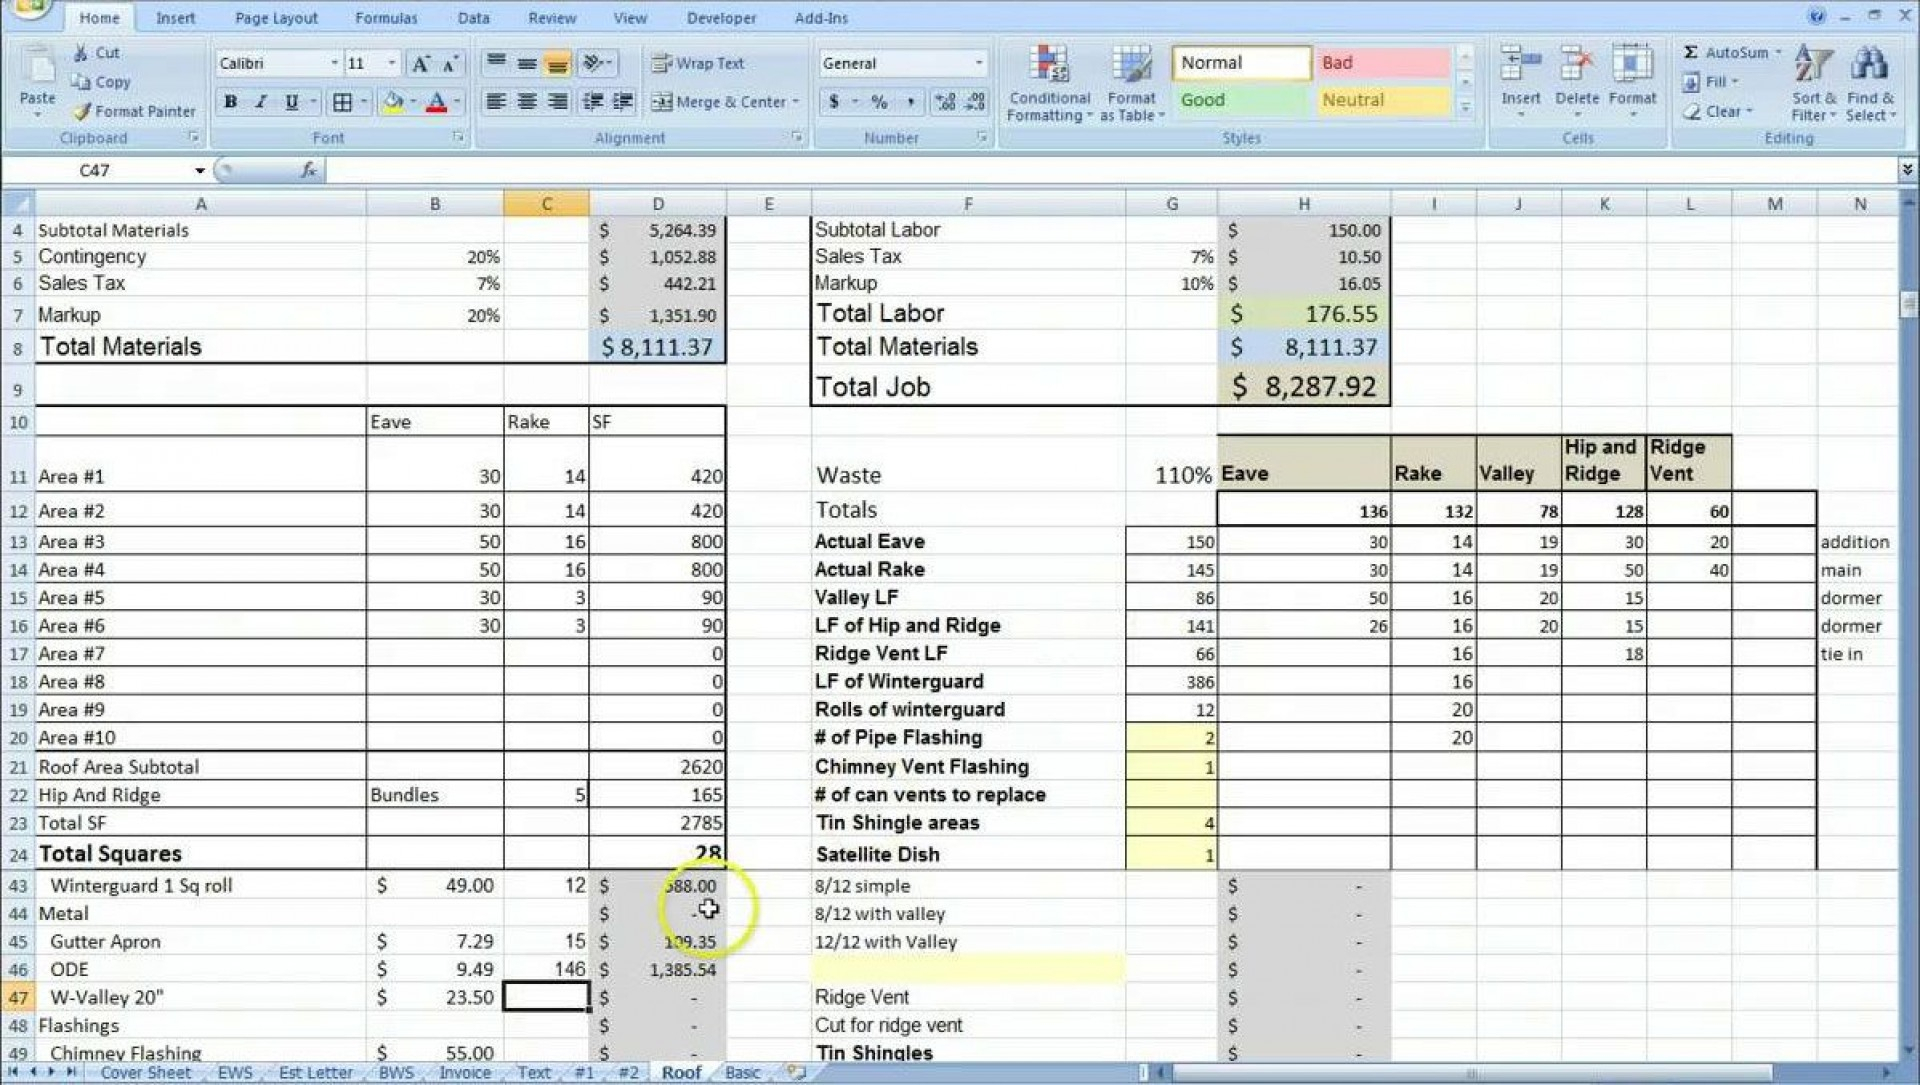 Job Costing Spreadsheet Excel With 002 Template Ideas Construction Job Cost Spreadsheet With Estimate Job Costing Spreadsheet Excel Google Spreadshee Google Spreadshee construction job costing spreadsheet excel